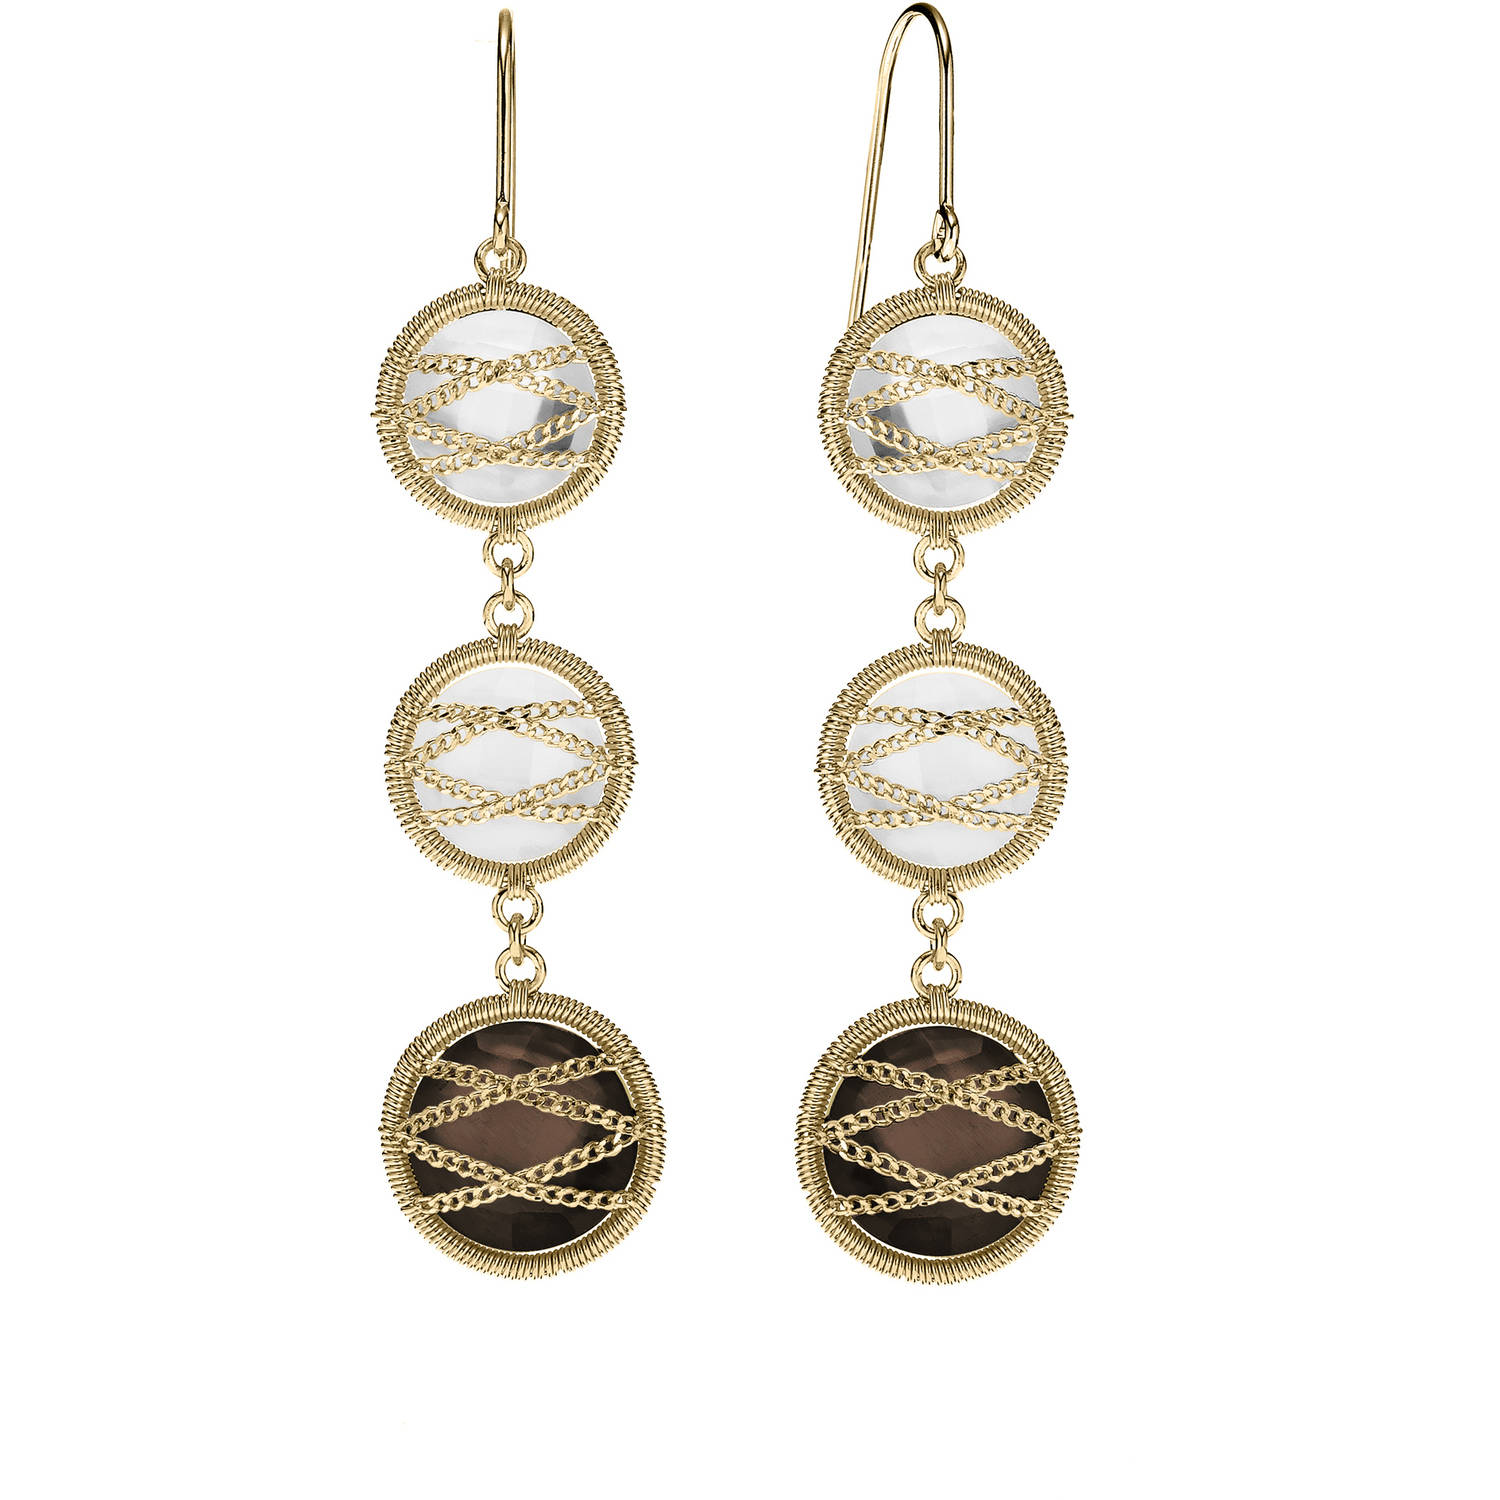 Image of 5th & Main 18kt Gold over Sterling Silver Hand-Wrapped Triple Round Smokey Quartz and Crystal Stone Earrings